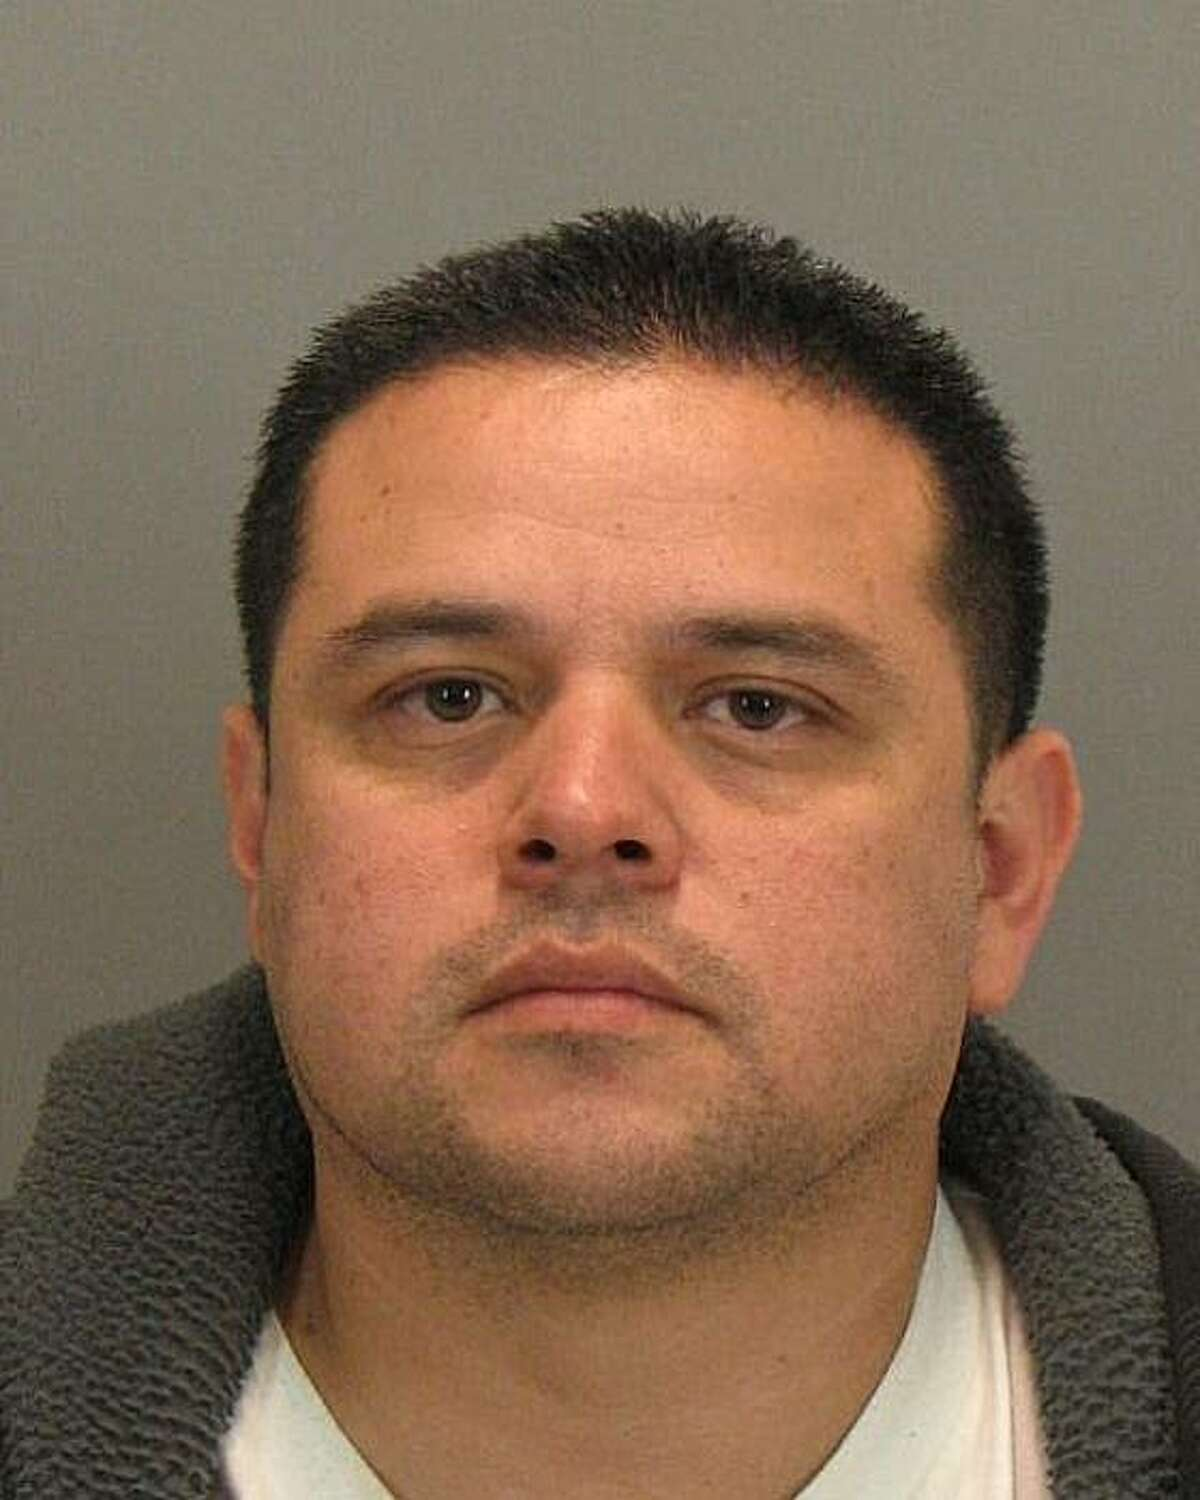 On Tuesday, October 26, undercover detectives from the Santa Clara County Special Operations Division arrested a California Department of Corrections officer, Sergio Javier Noguera, 38 of Salinas, for drug-related charges during an undercover operation as a result of a six-month long investigation.